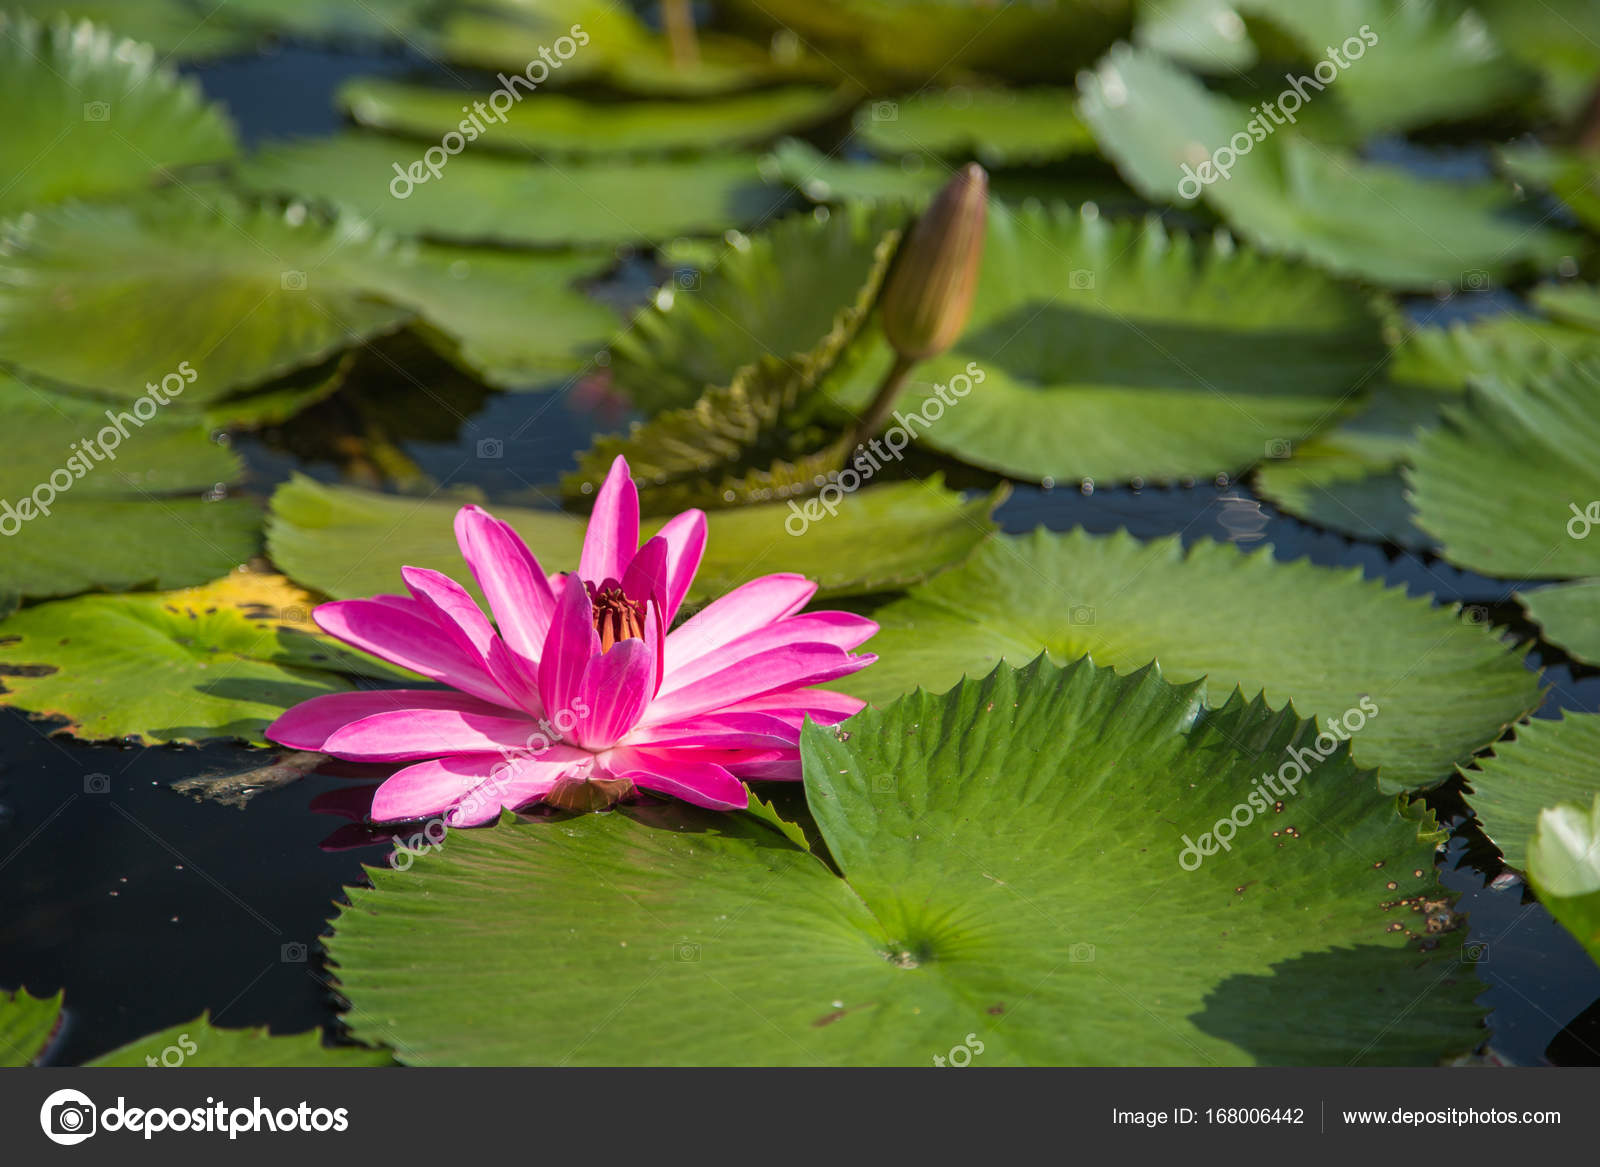 Lotus flower in pond at marina bay front singapore stock photo beautiful lotus flower in pond at marina bay front singapore photo by geargodz izmirmasajfo